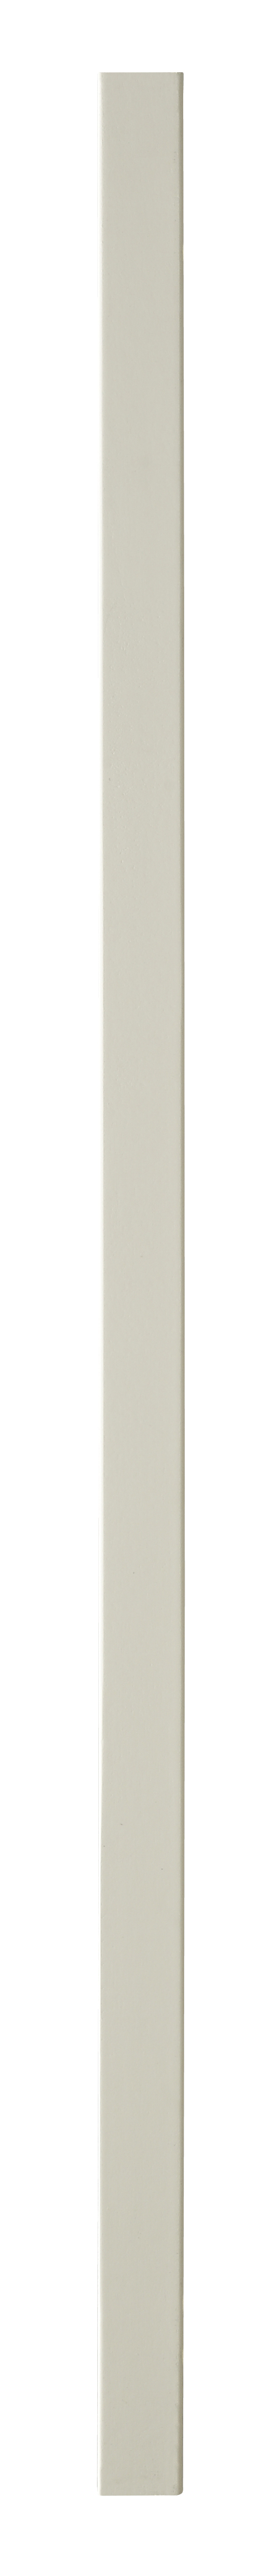 1 White Plain Baluster 1100 41